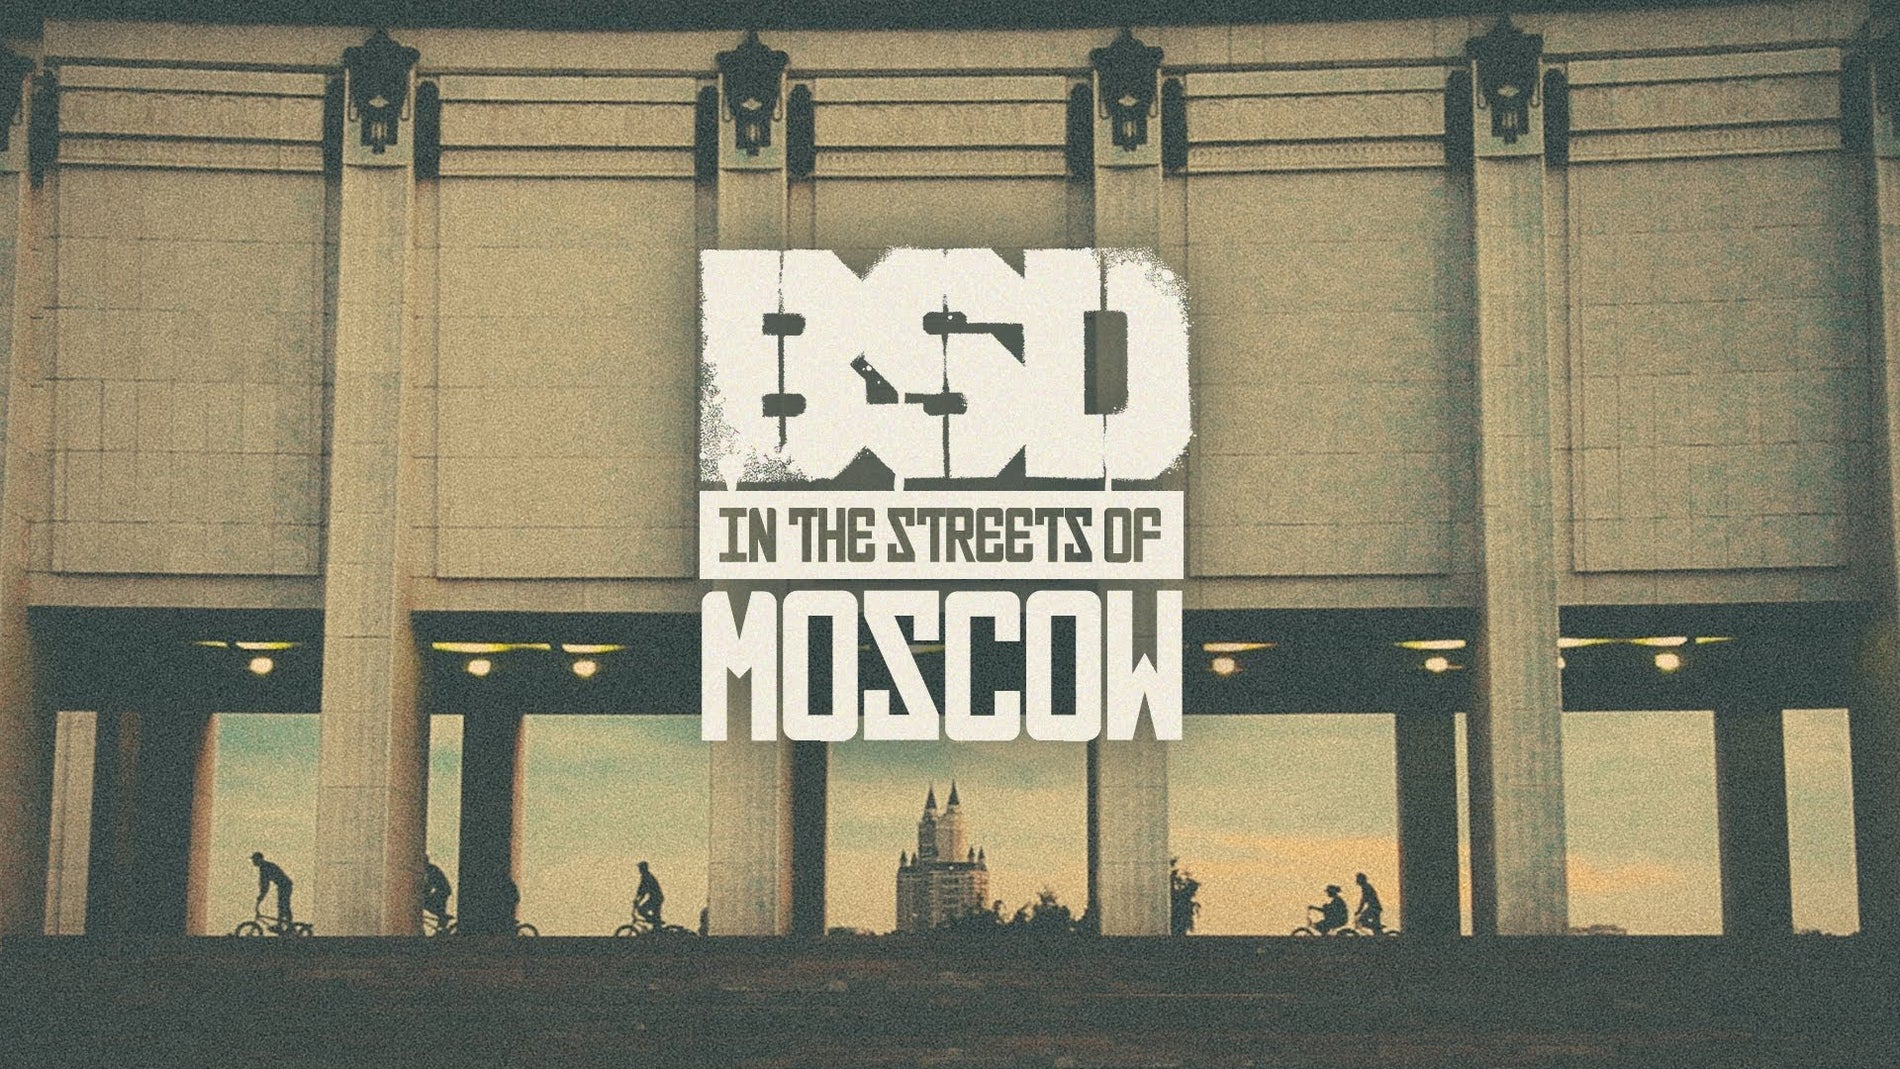 'In the streets of MOSCOW'